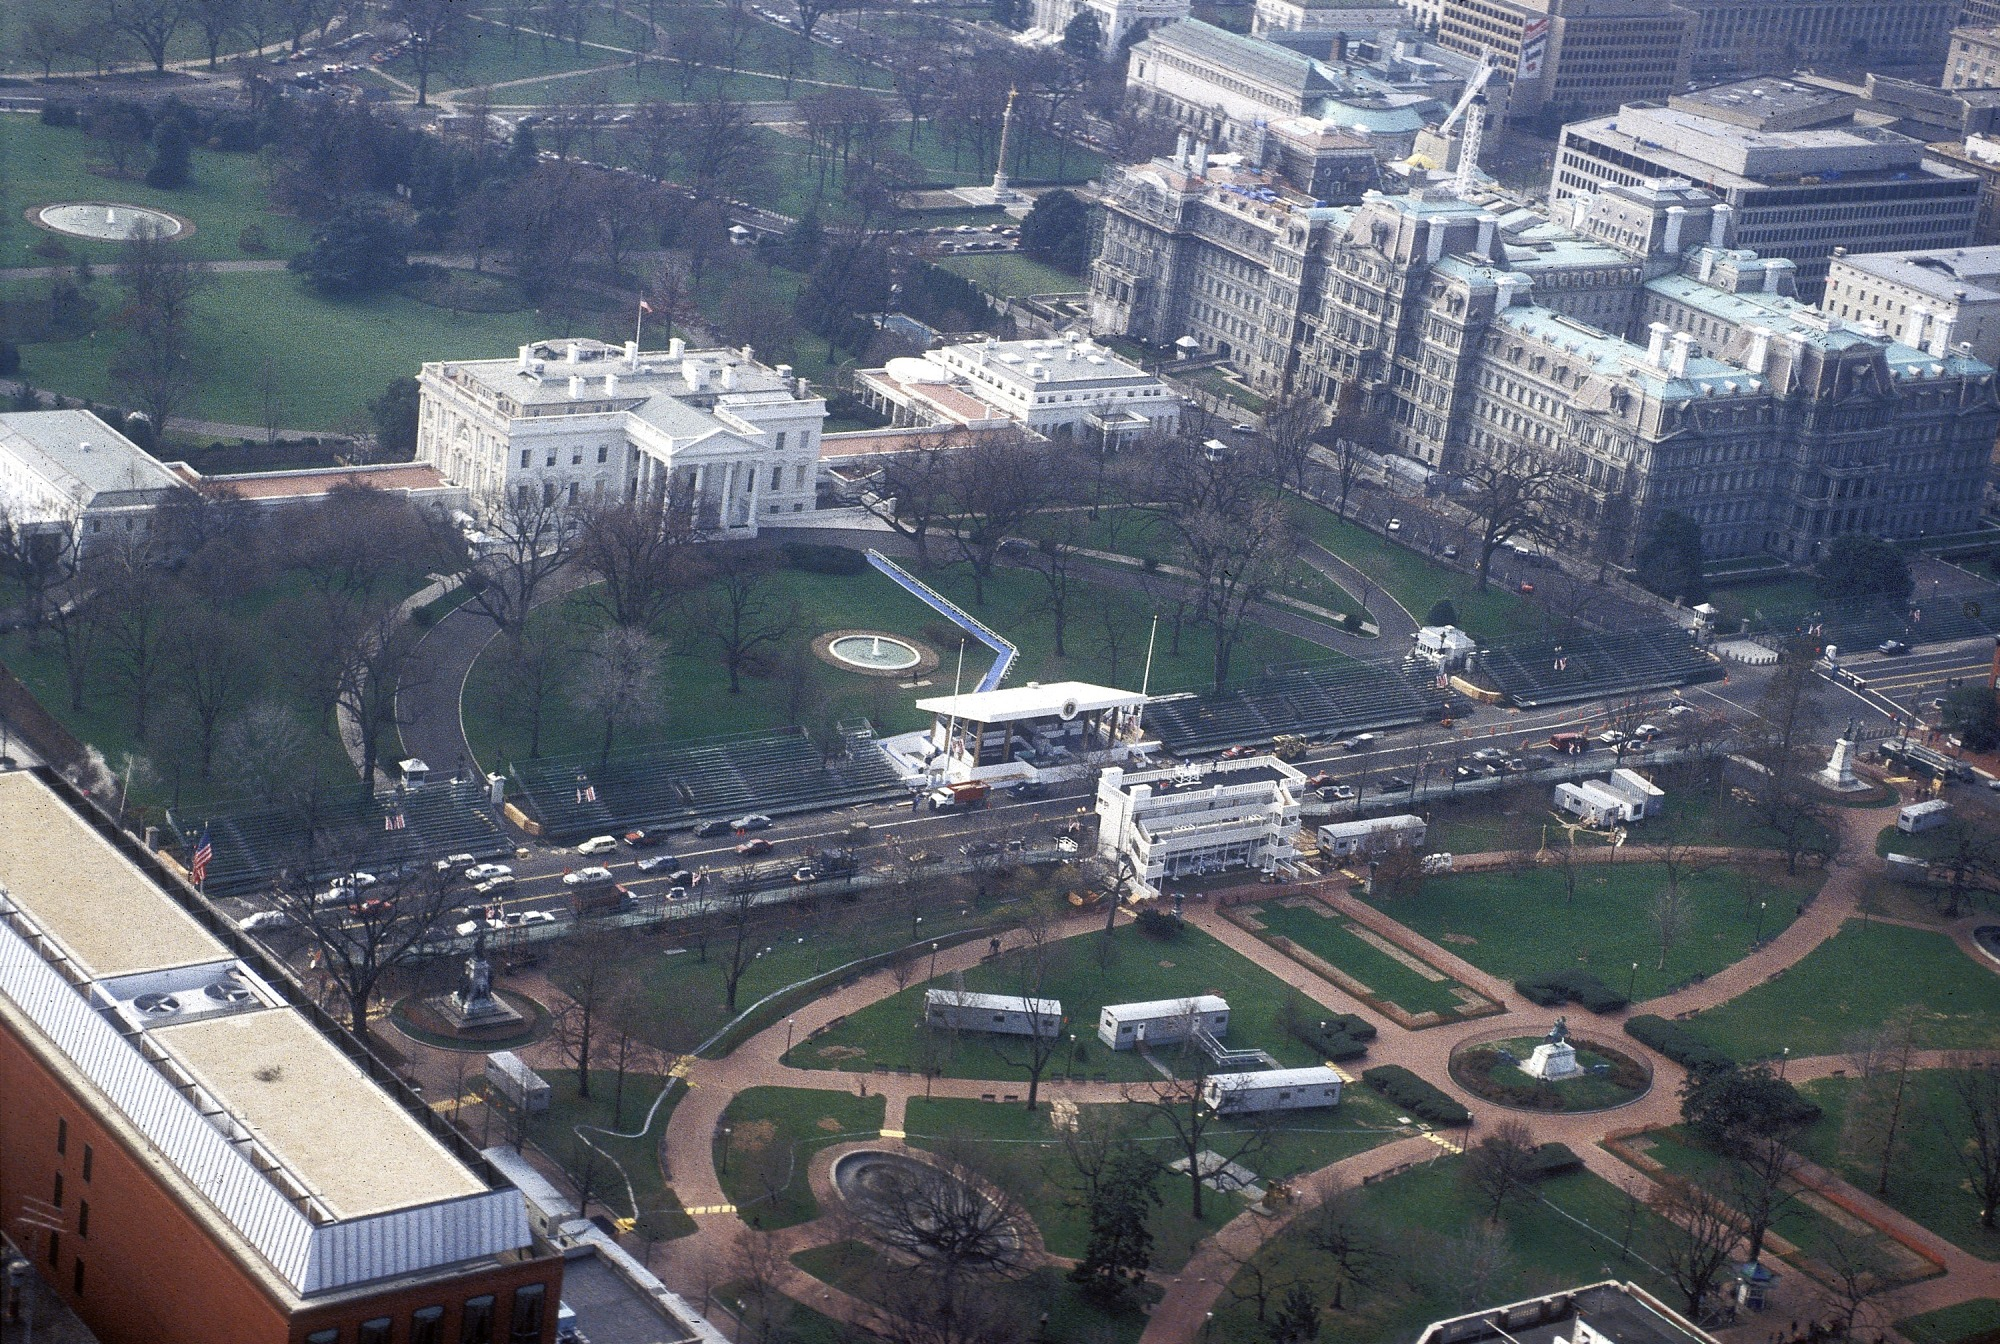 William J. Clinton Presidential Inauguration, aerial view of White House, 1993